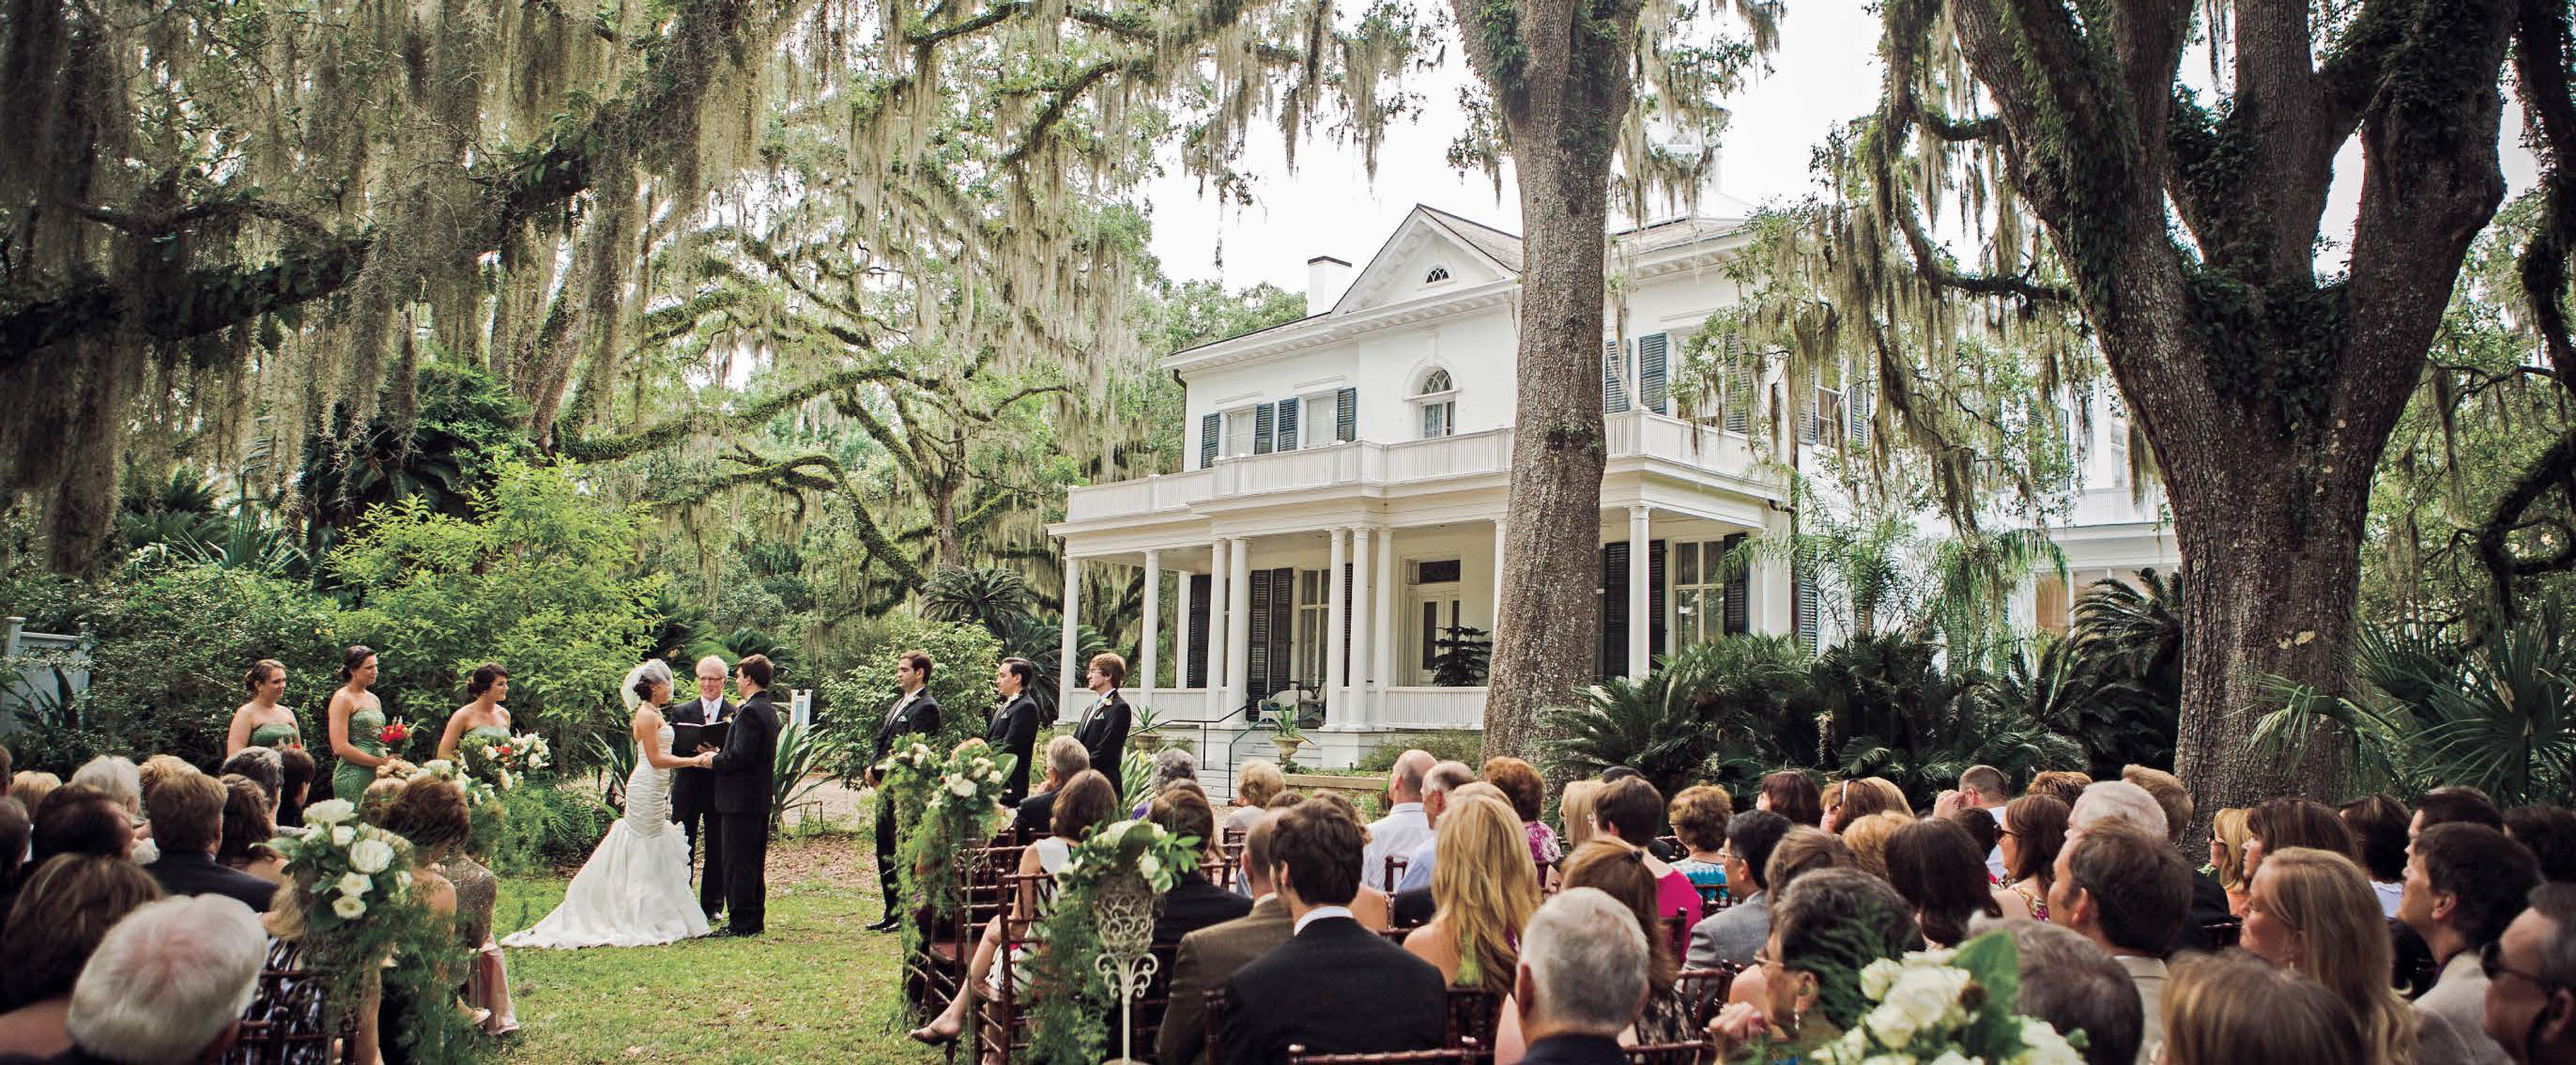 Goodwood Museum and Gardens, Tallahassee FL, Tallahassee Museums, Wedding Venues in Tallahassee